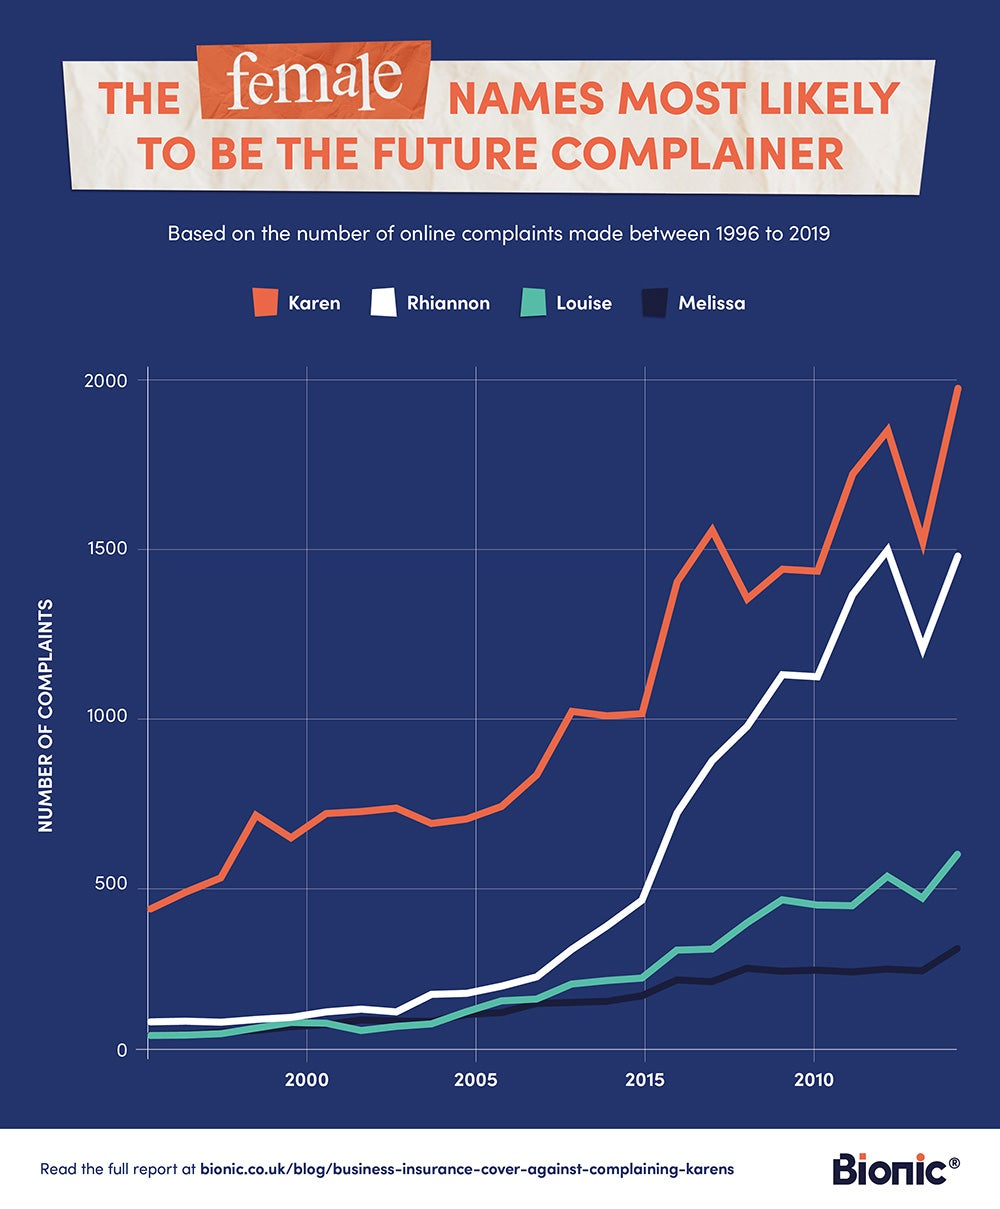 Graph showing the female names most likely to complain in the future